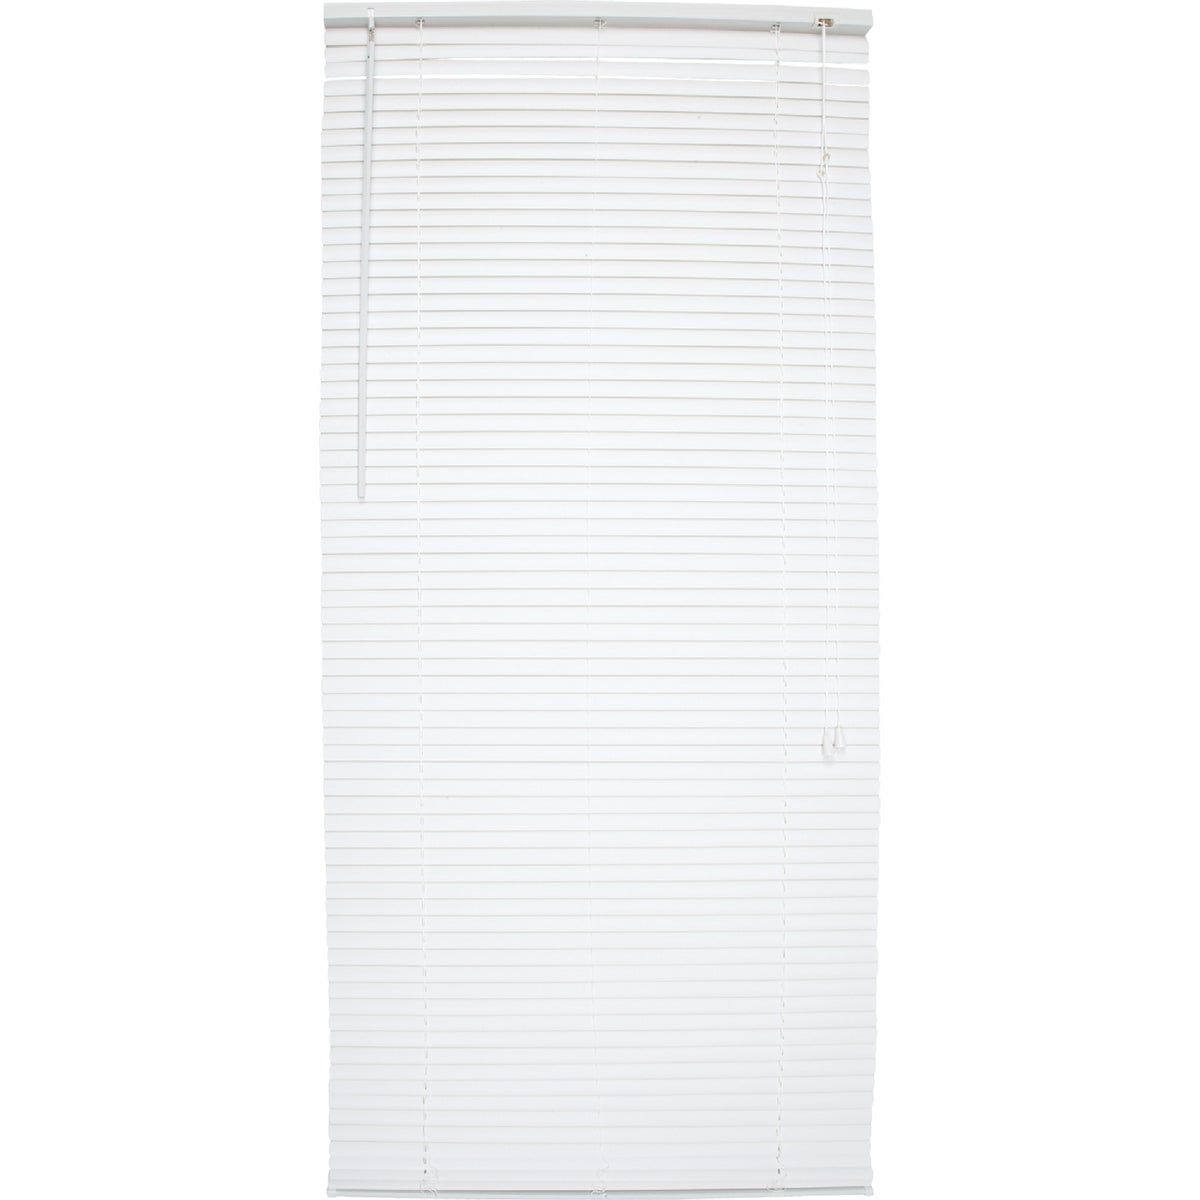 44X64 WHITE MINI BLIND - 615720 by Lotus Wind Incom